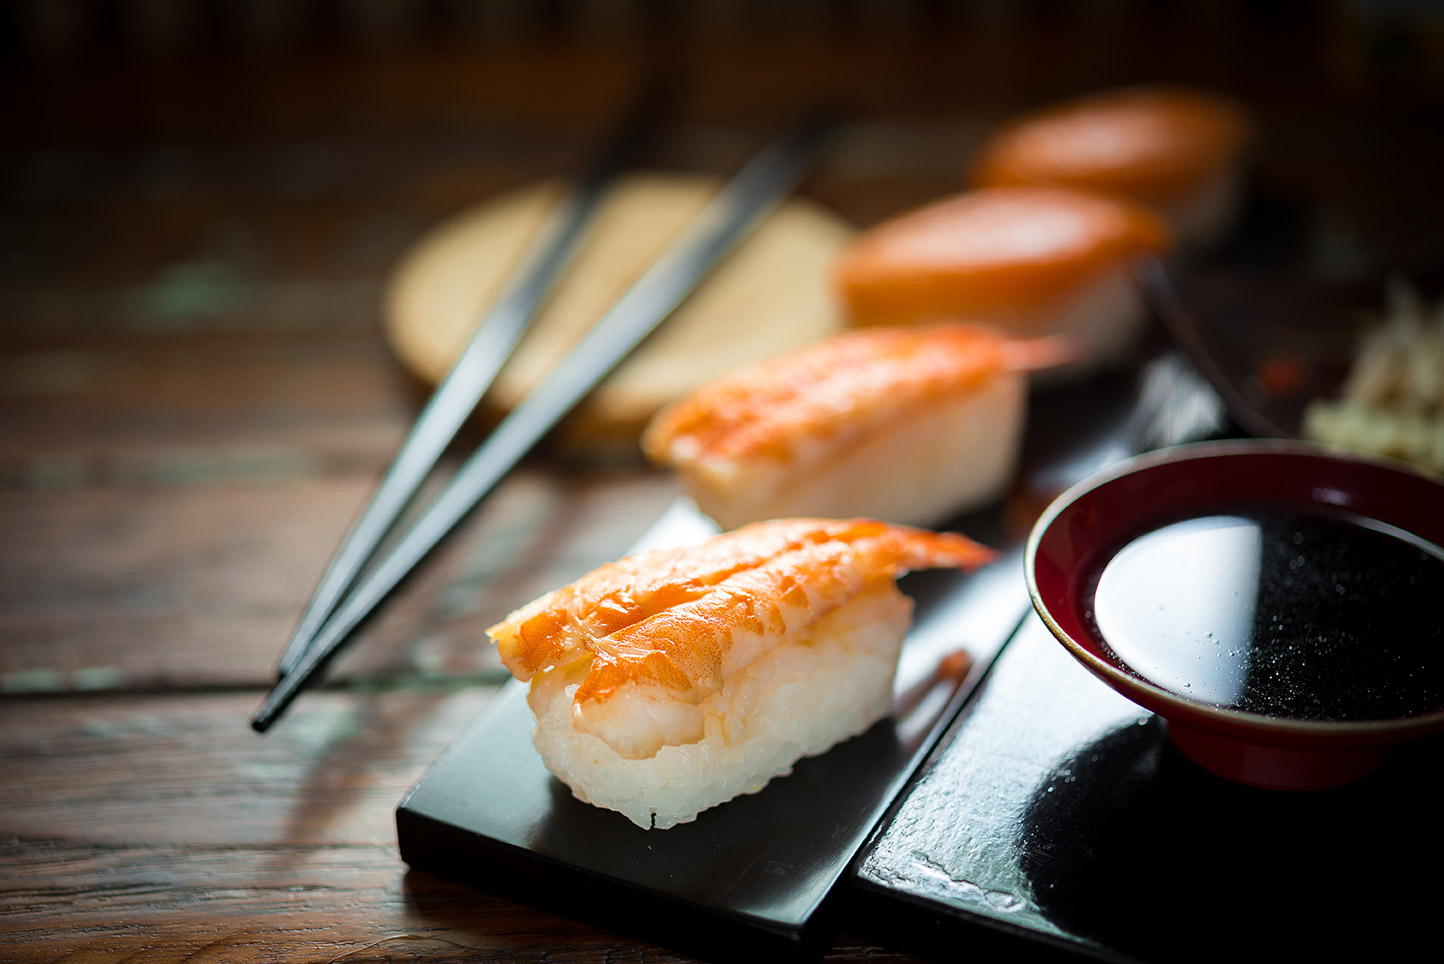 Nigiri – The most simple variety of sushi